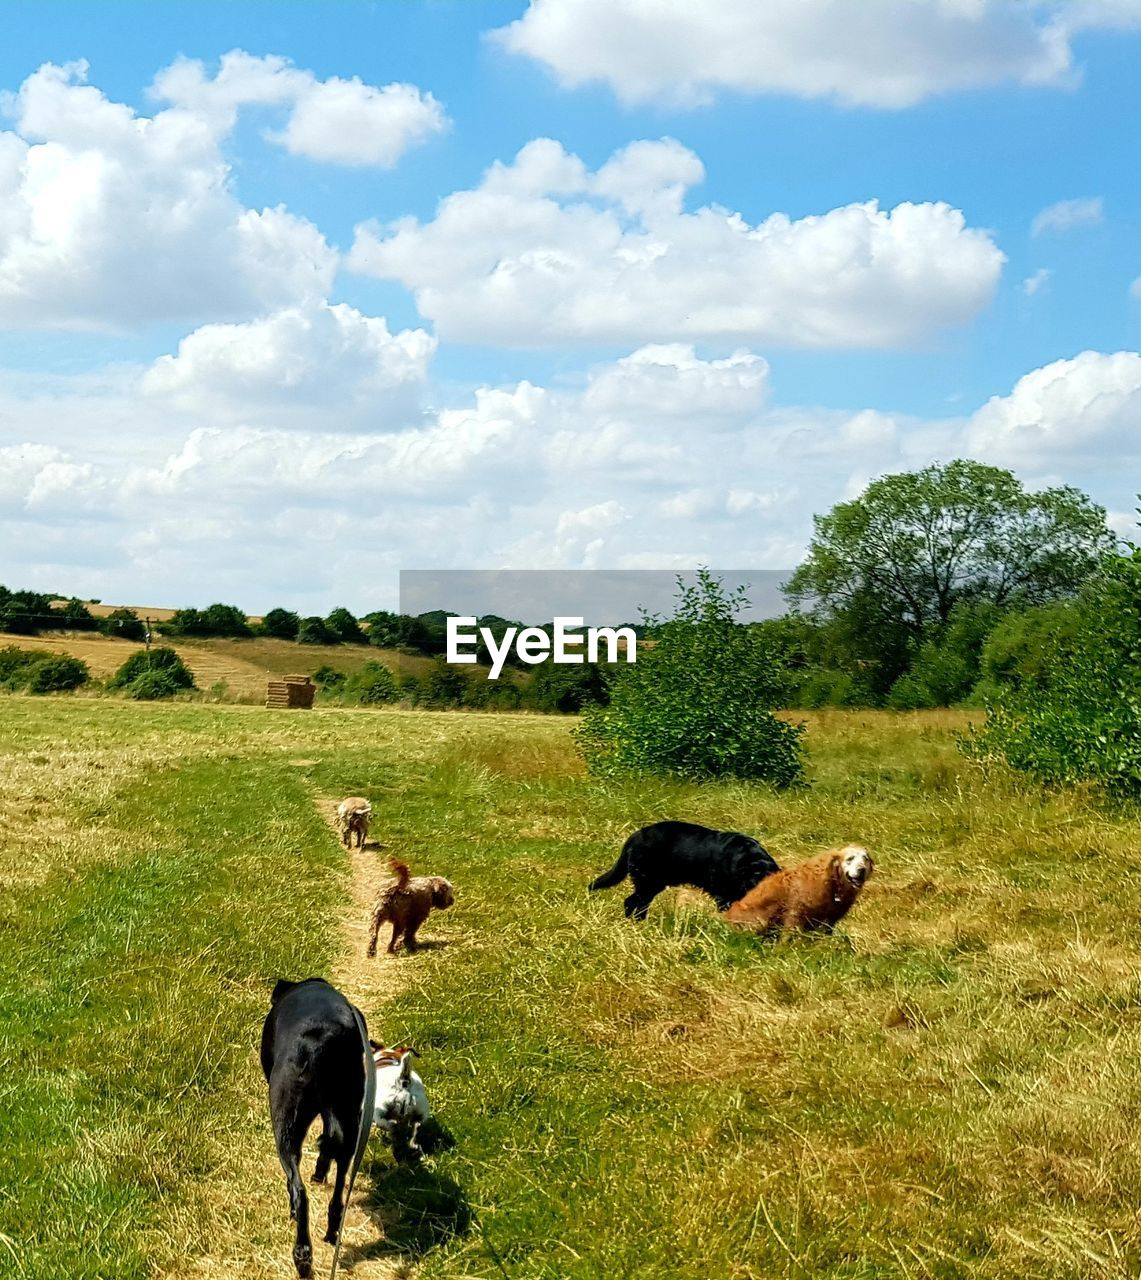 mammal, animal themes, animal, plant, domestic, domestic animals, field, sky, grass, group of animals, pets, land, cloud - sky, vertebrate, livestock, tree, nature, day, cattle, landscape, no people, herbivorous, outdoors